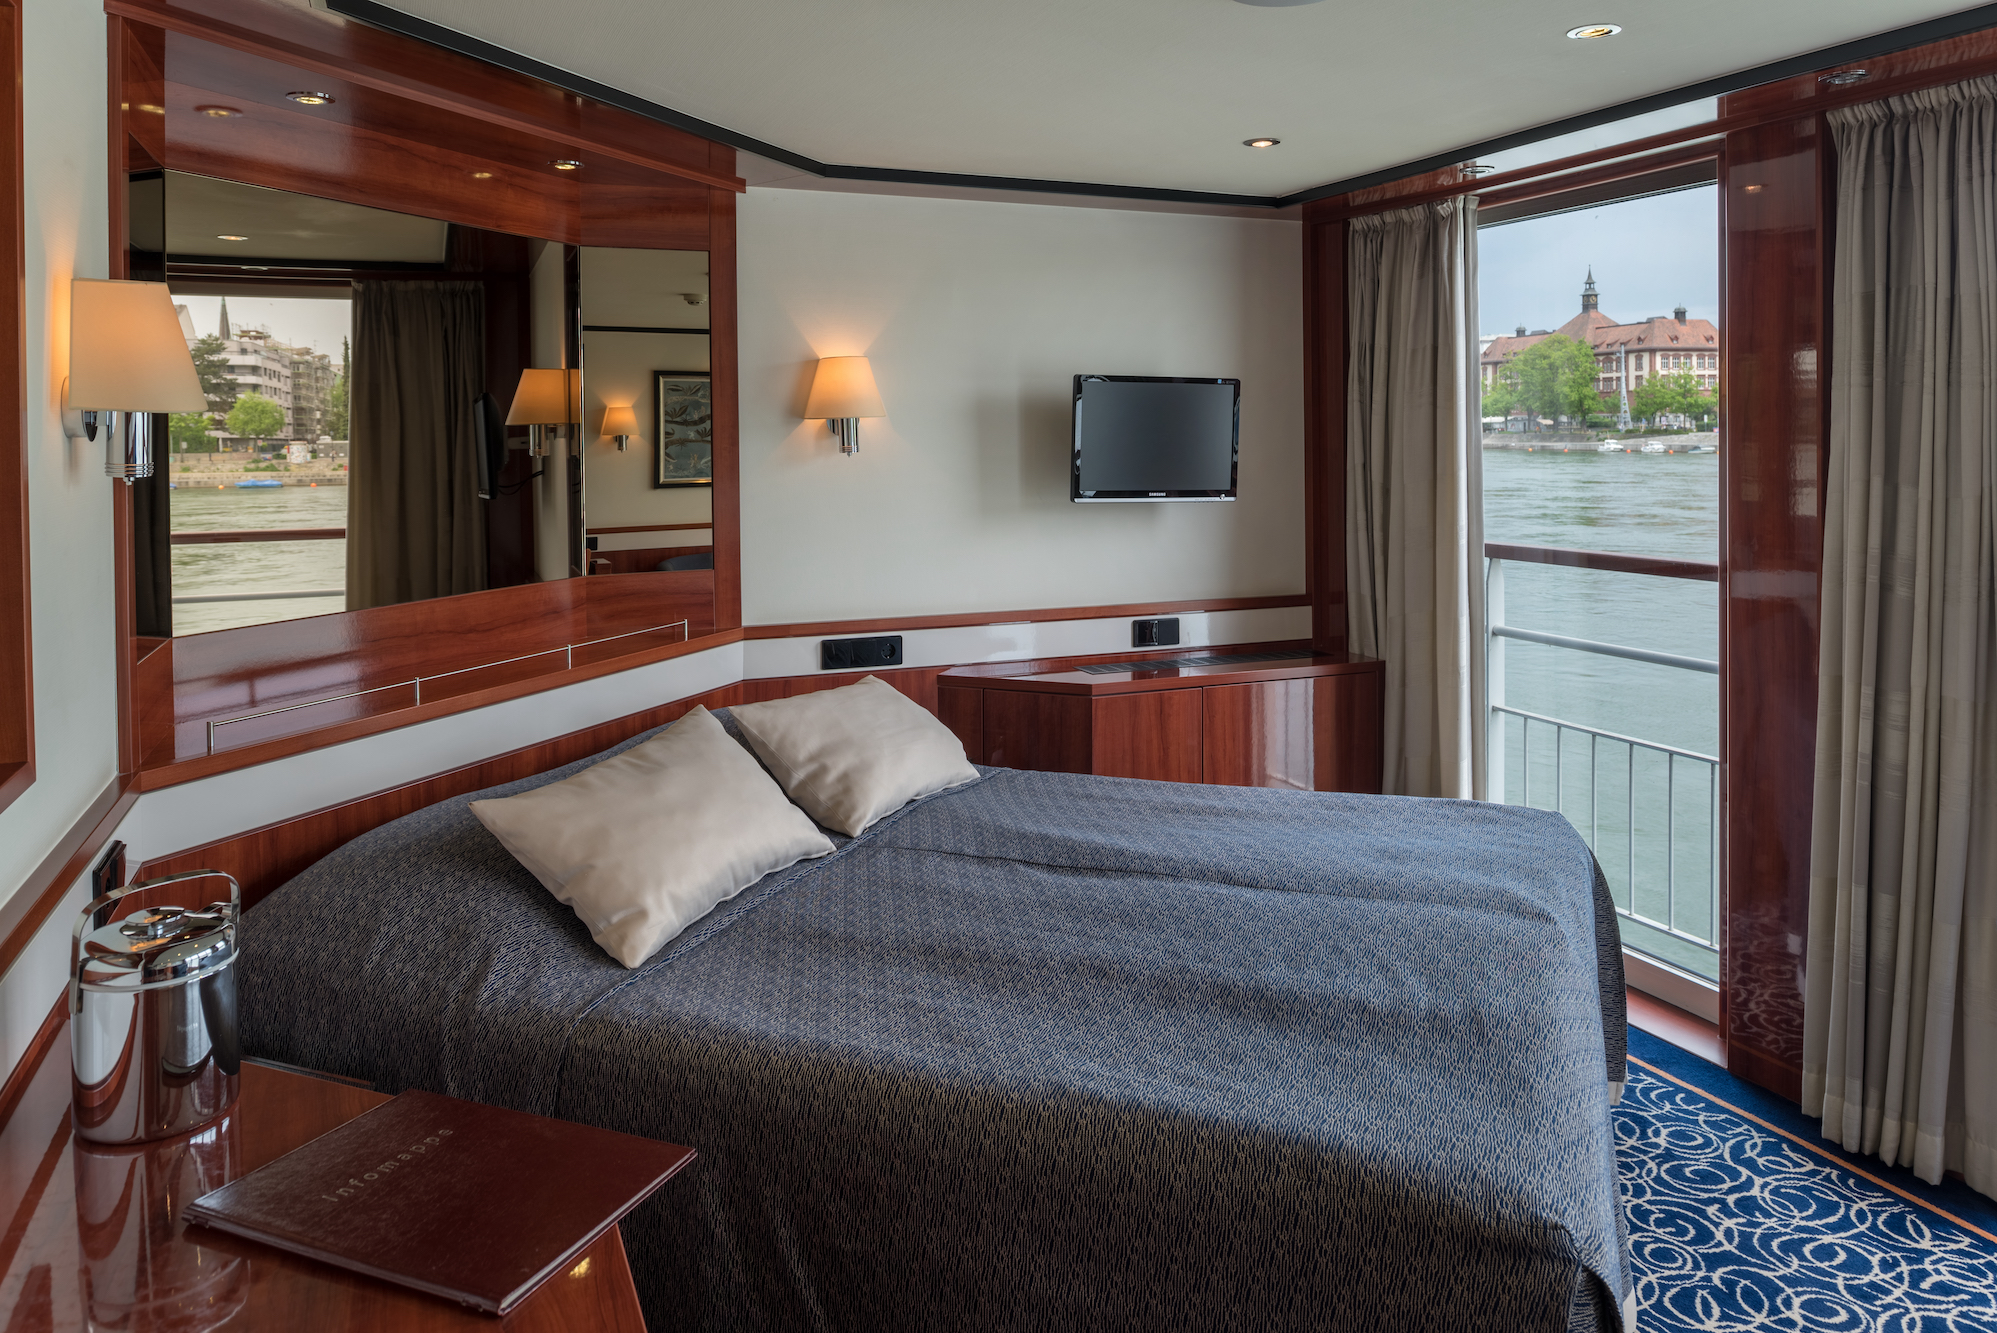 MS Thurgau Ultra Deluxe Suite